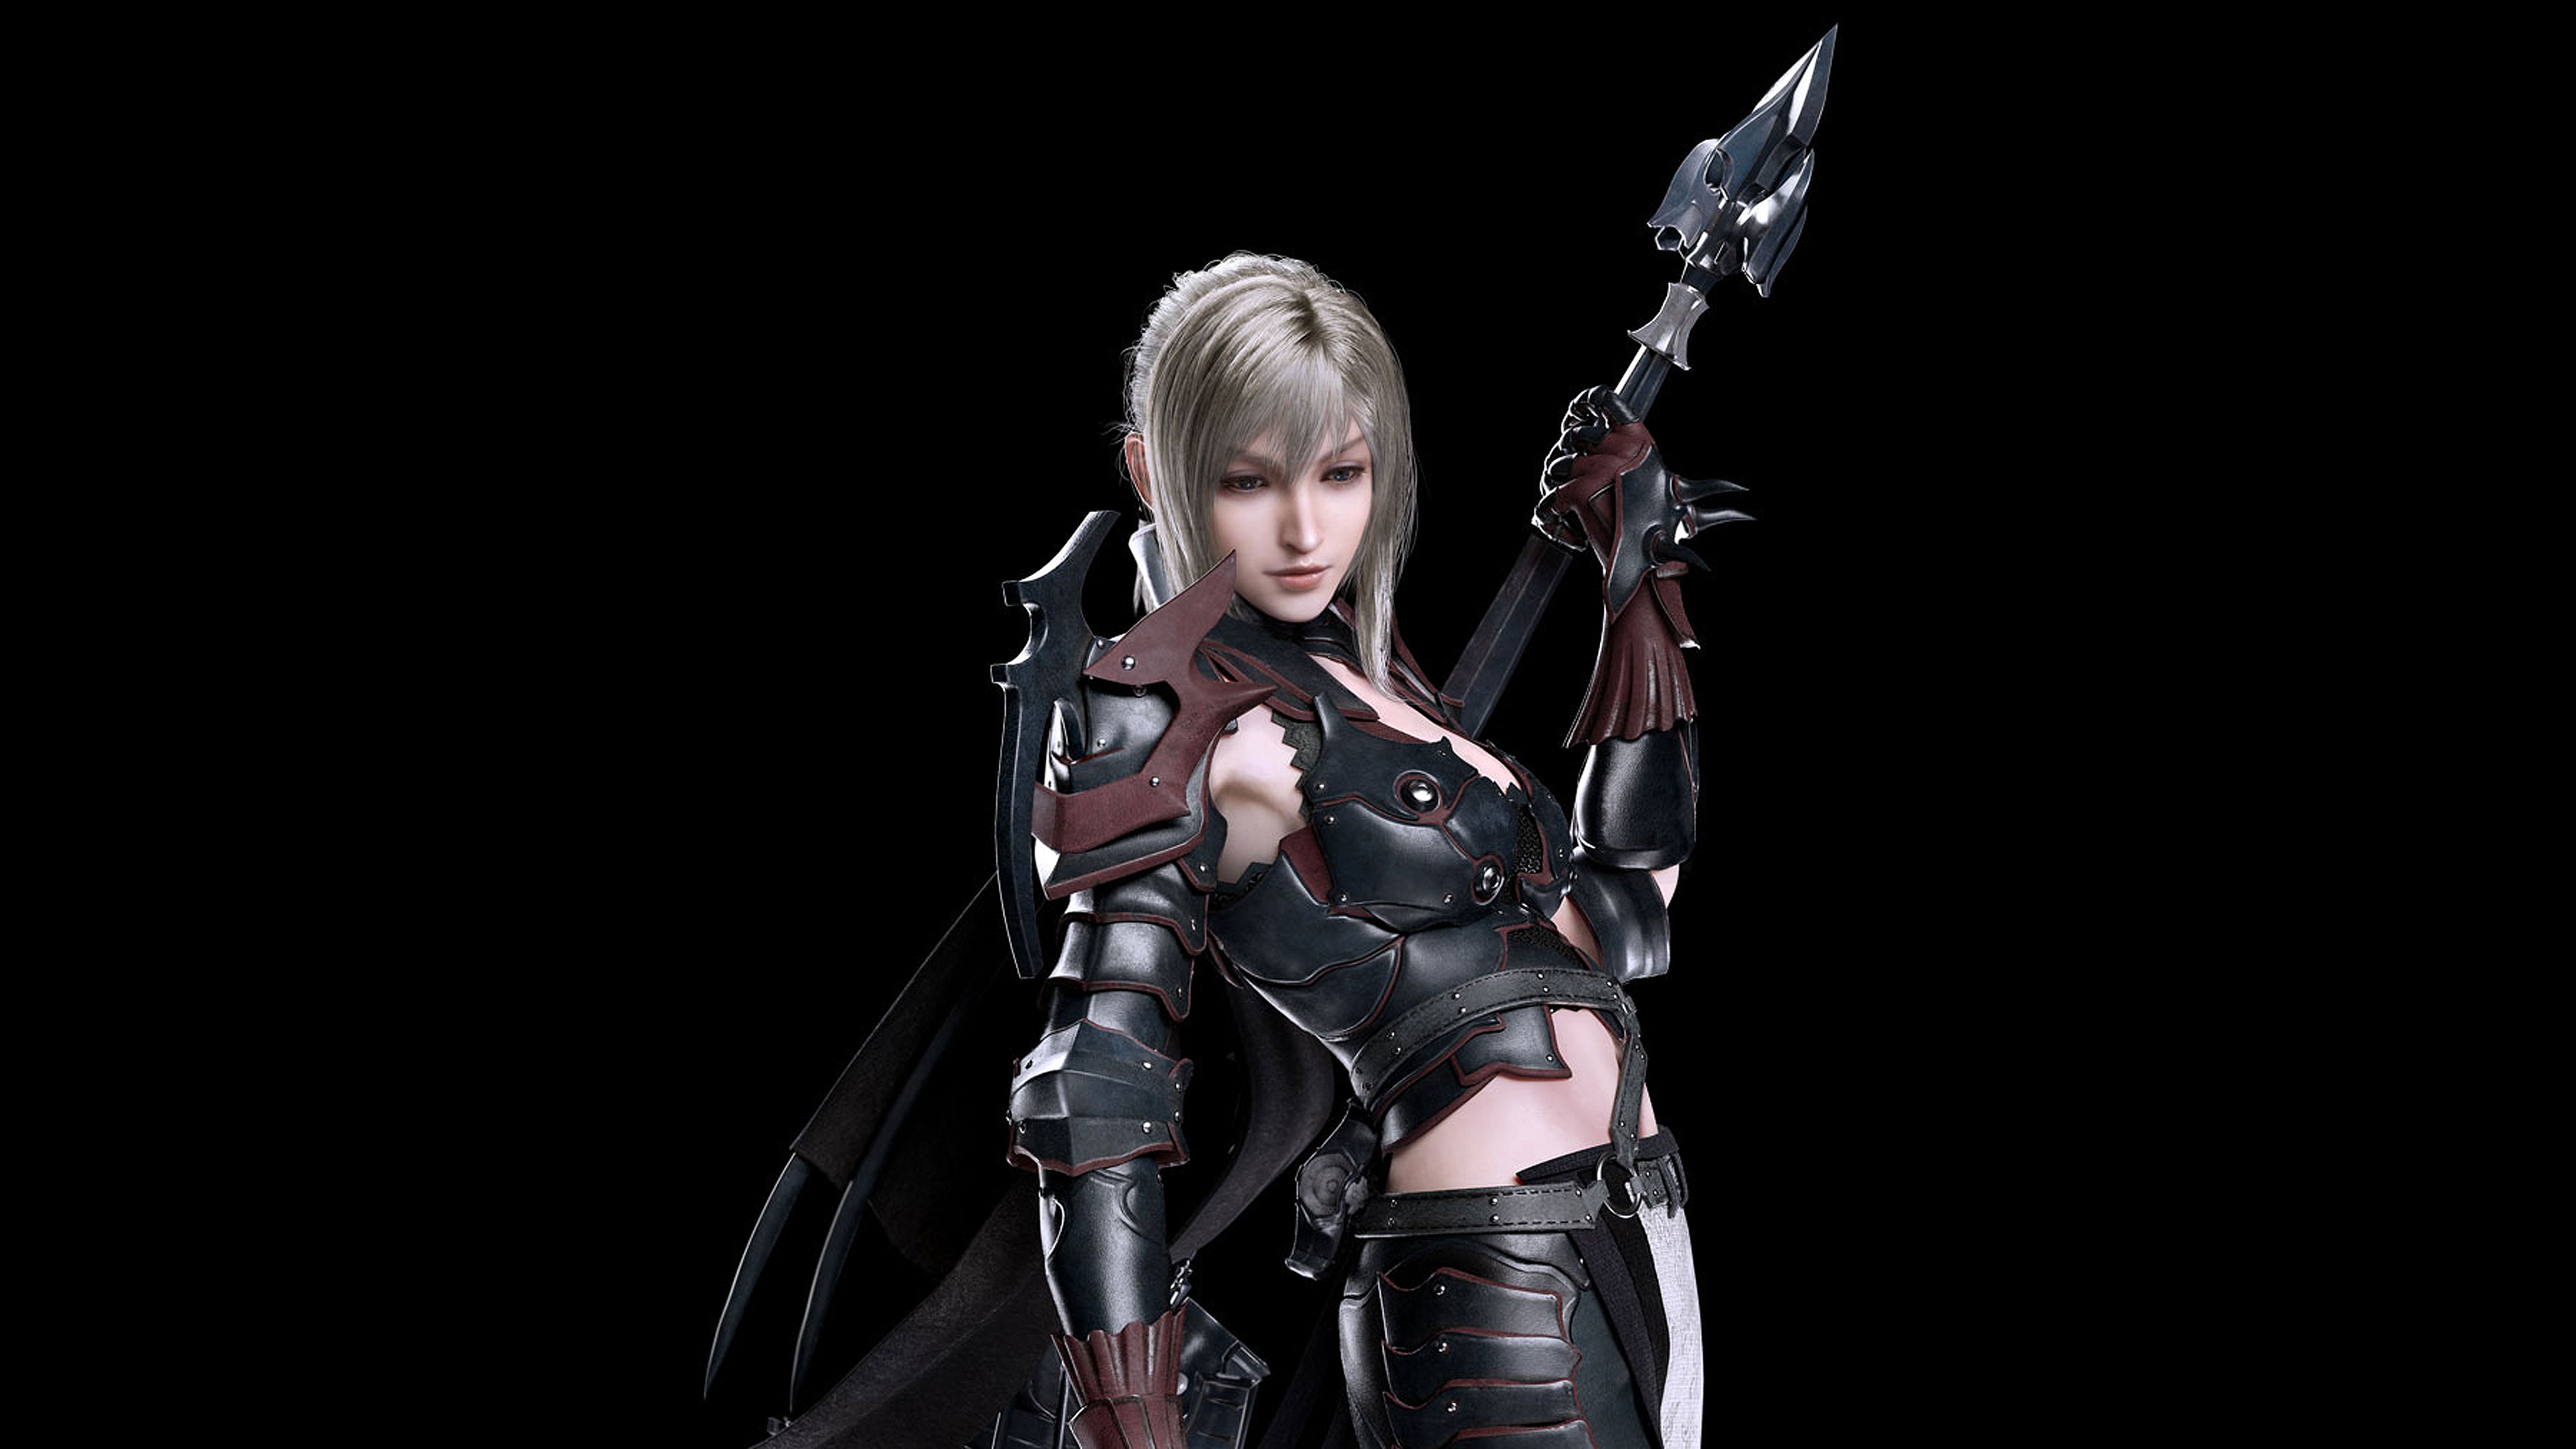 117 Final Fantasy Xv Hd Wallpapers: Aranea Highwind Final Fantasy Xv, HD Games, 4k Wallpapers